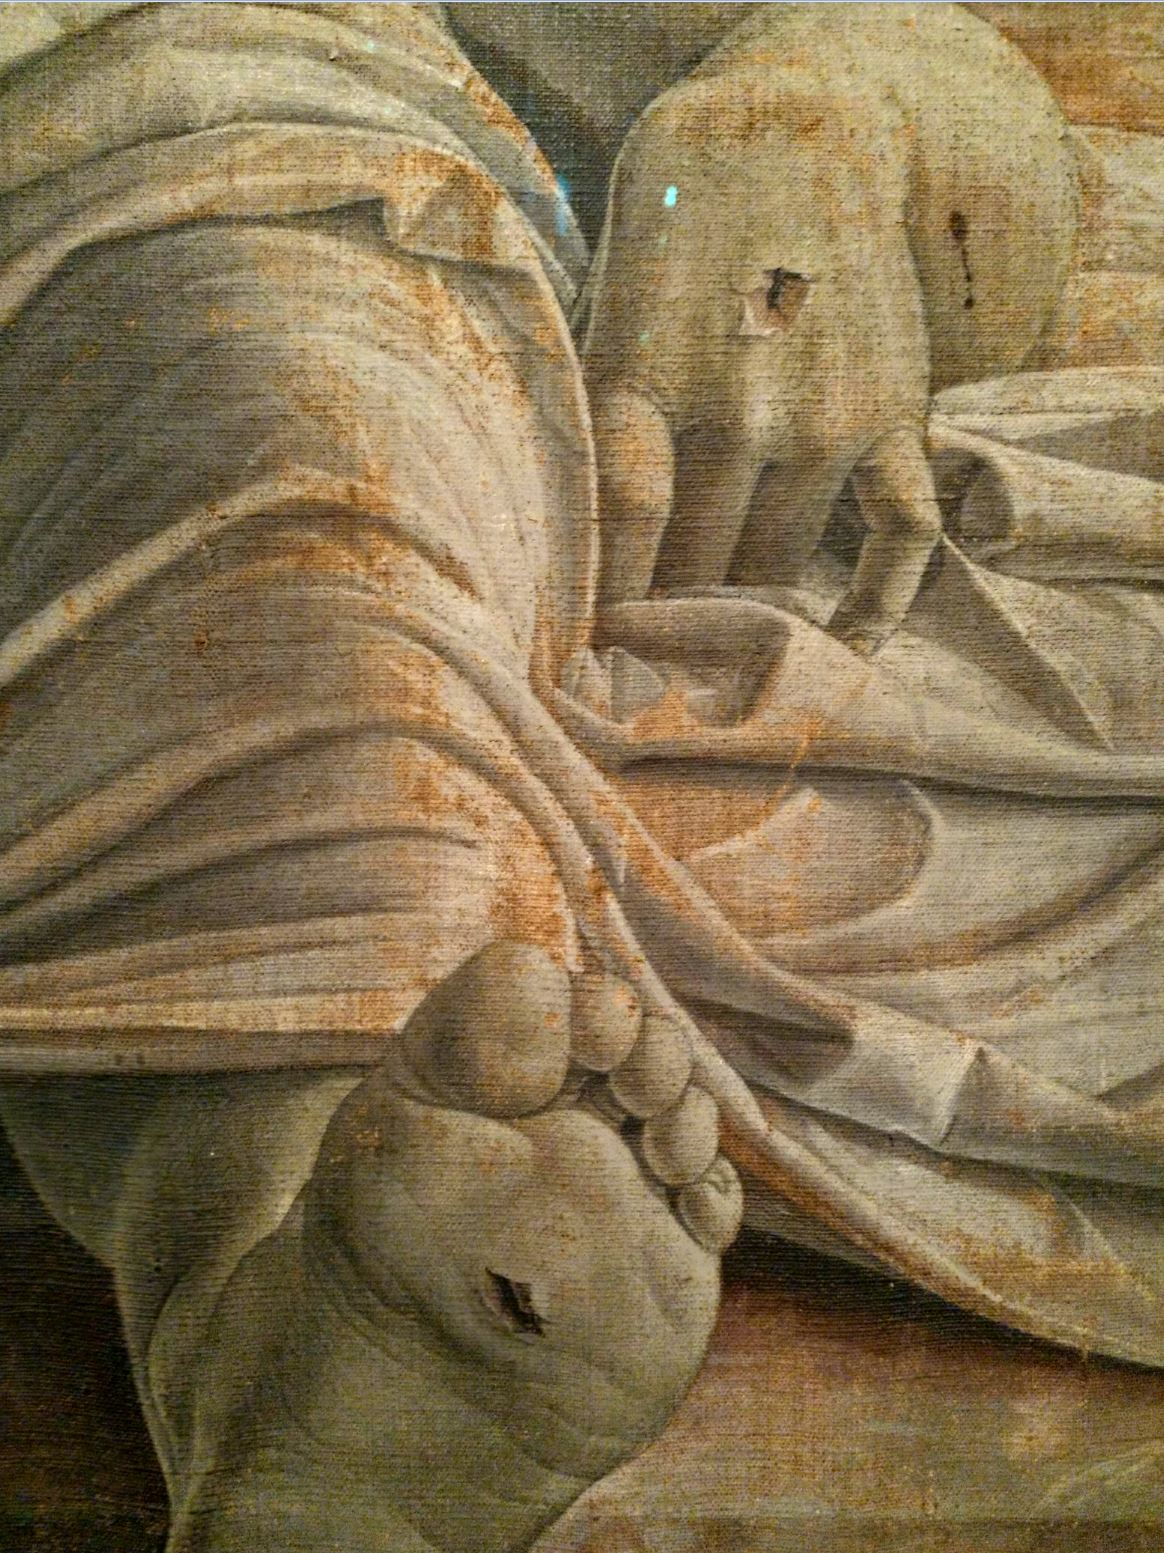 1480 ca The_dead_Christ_and_three_mourners,_by_Andrea_Mantegna Brera Milan detail